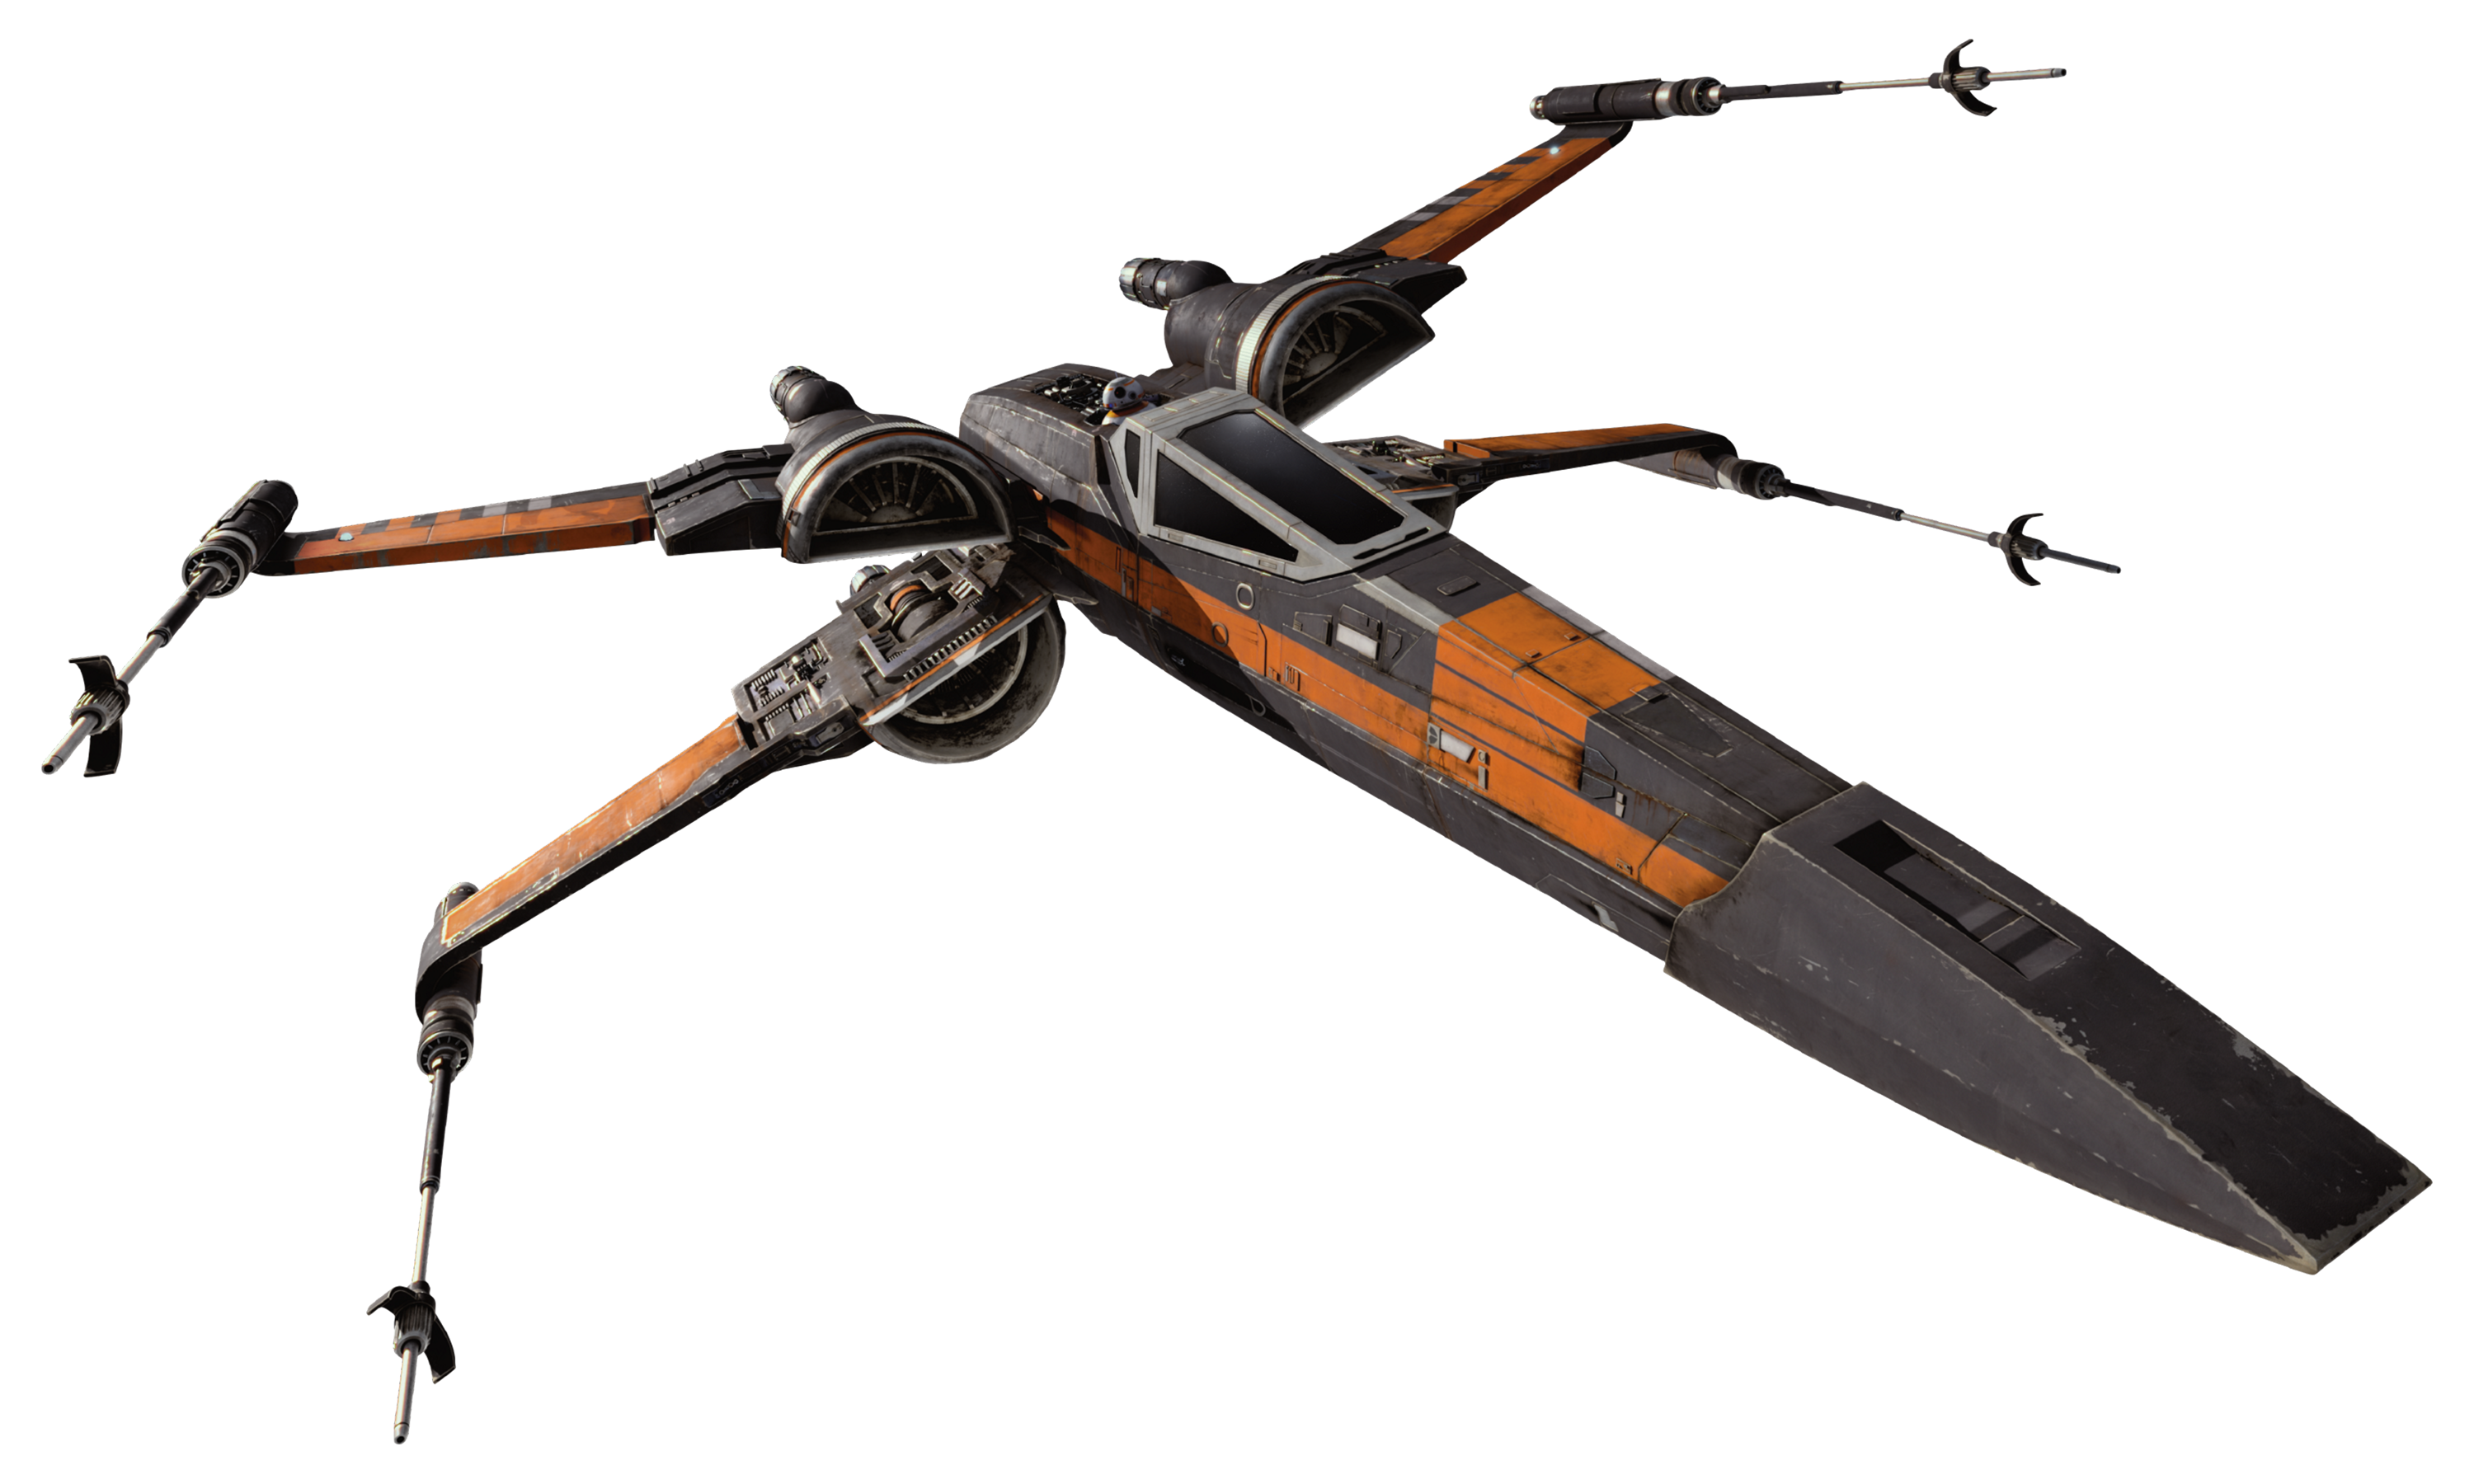 Star wars ship png. T x wing fighter